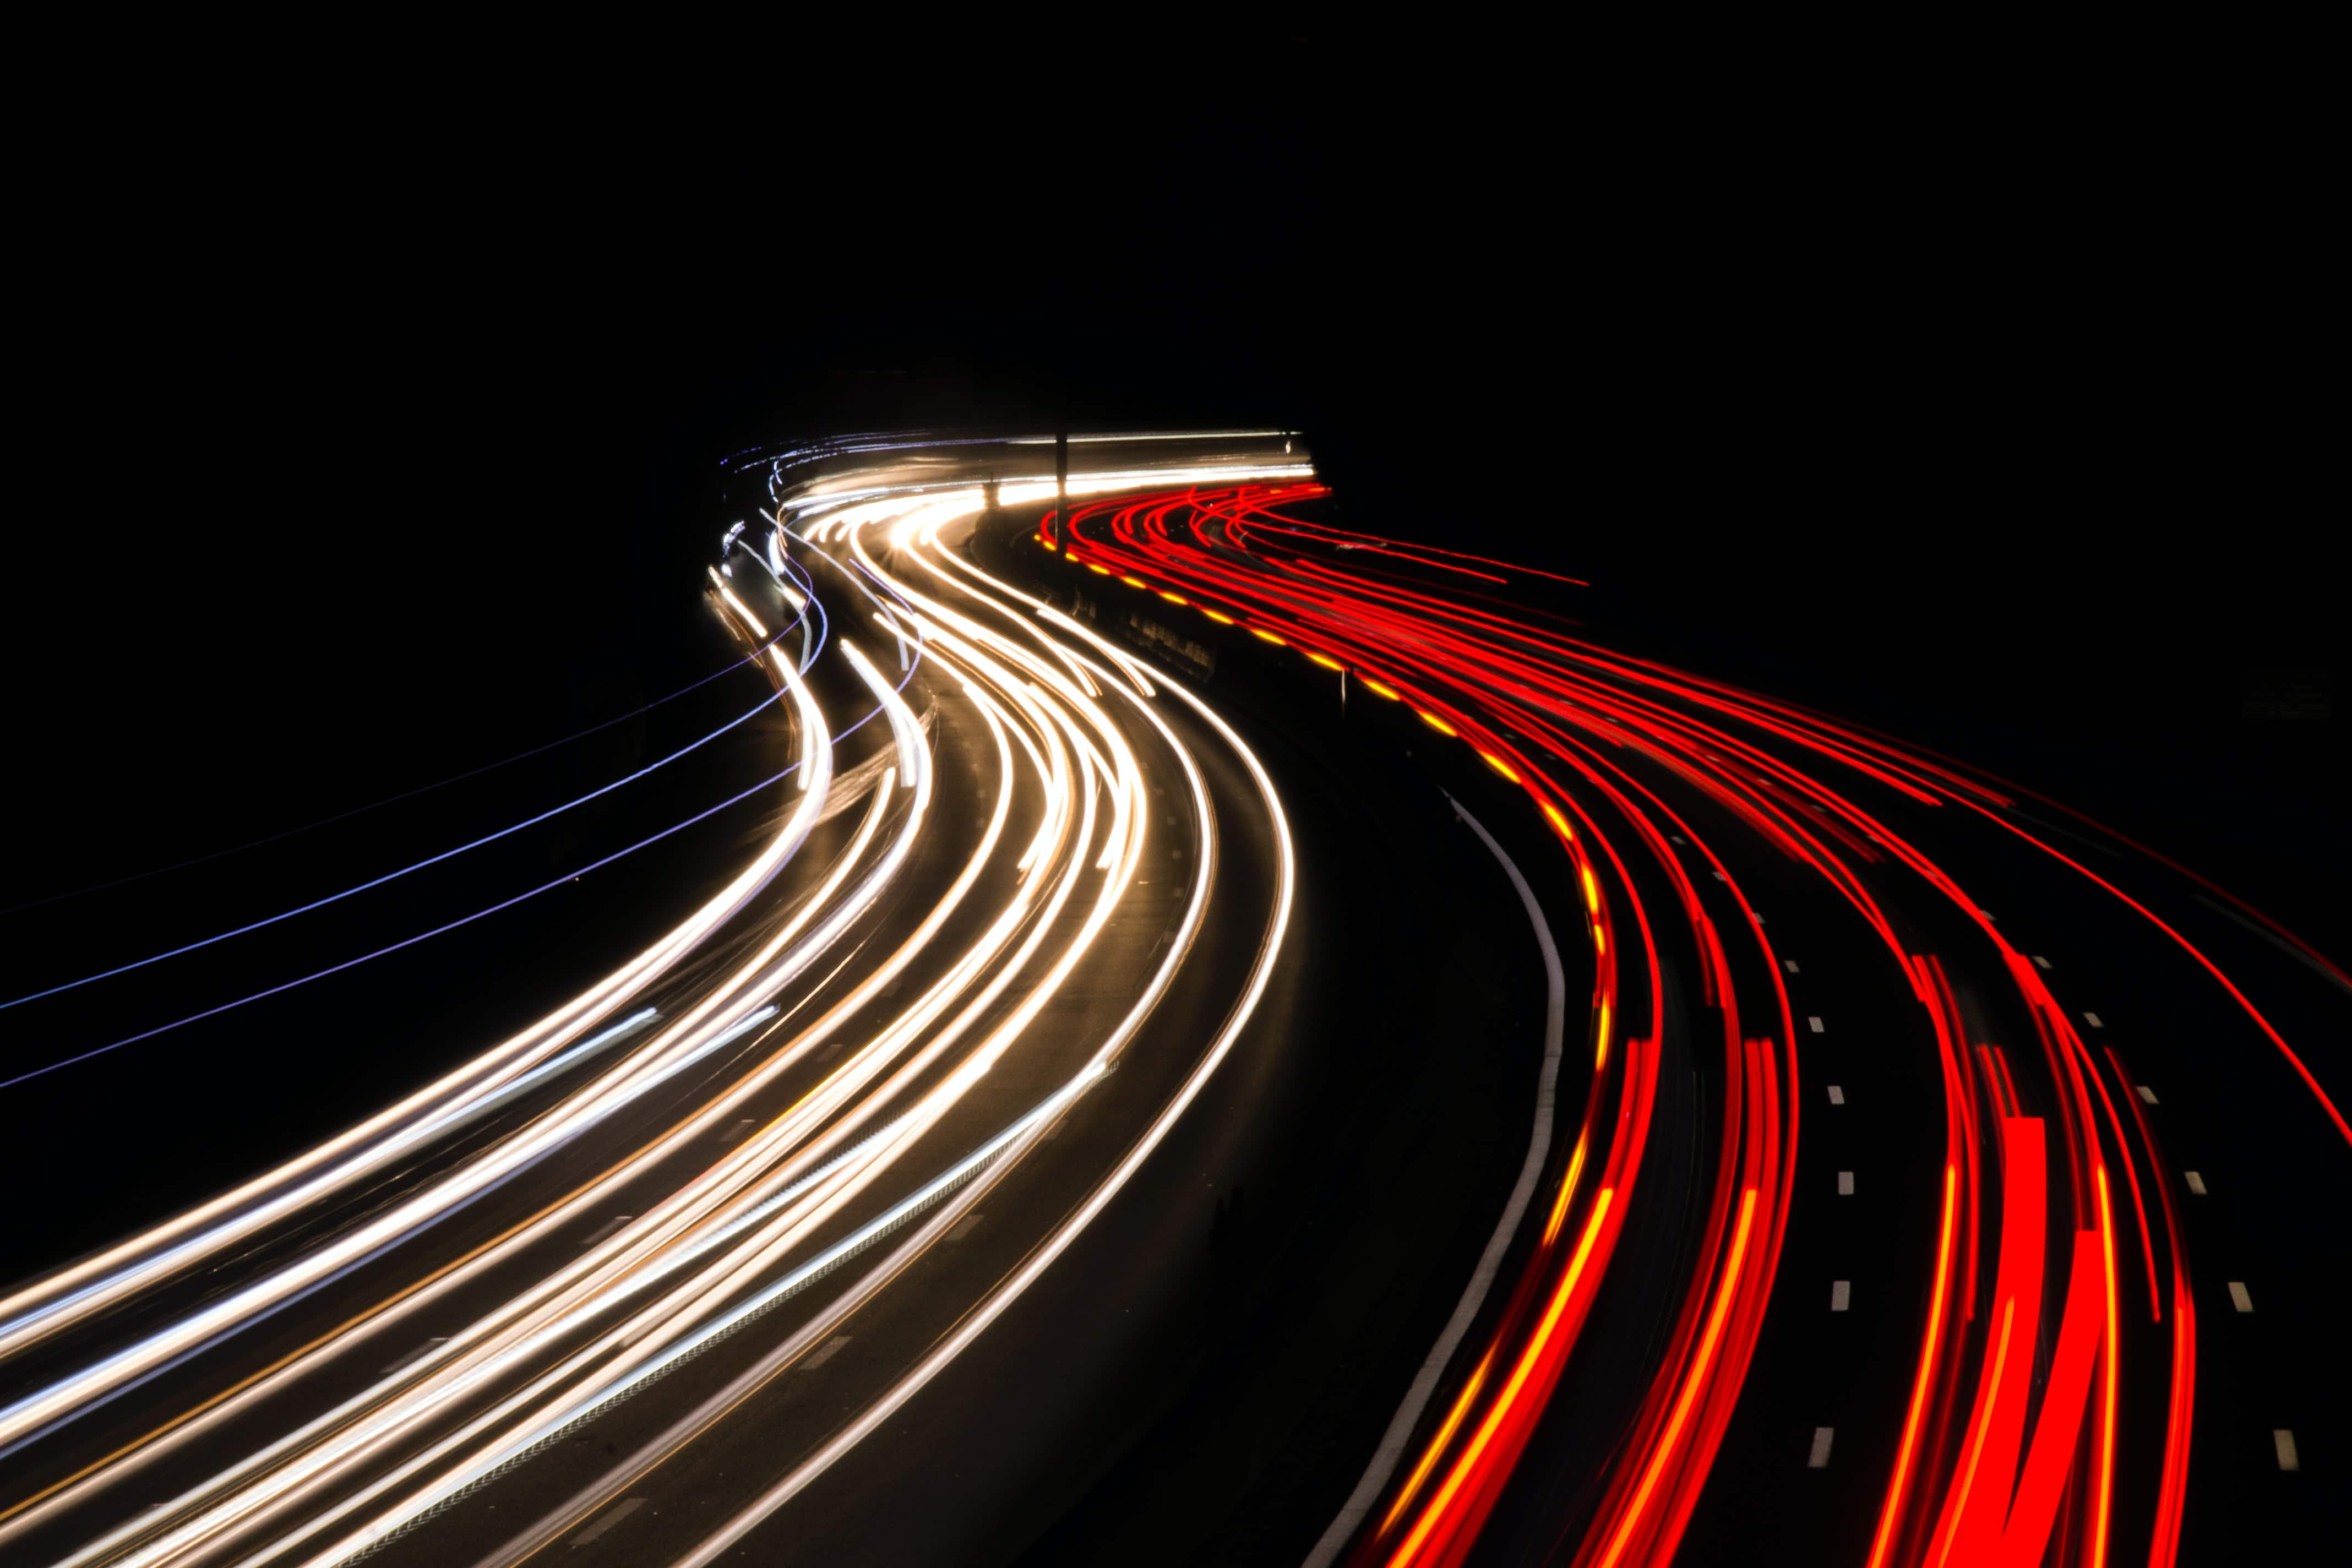 Photo of fast-moving traffic.